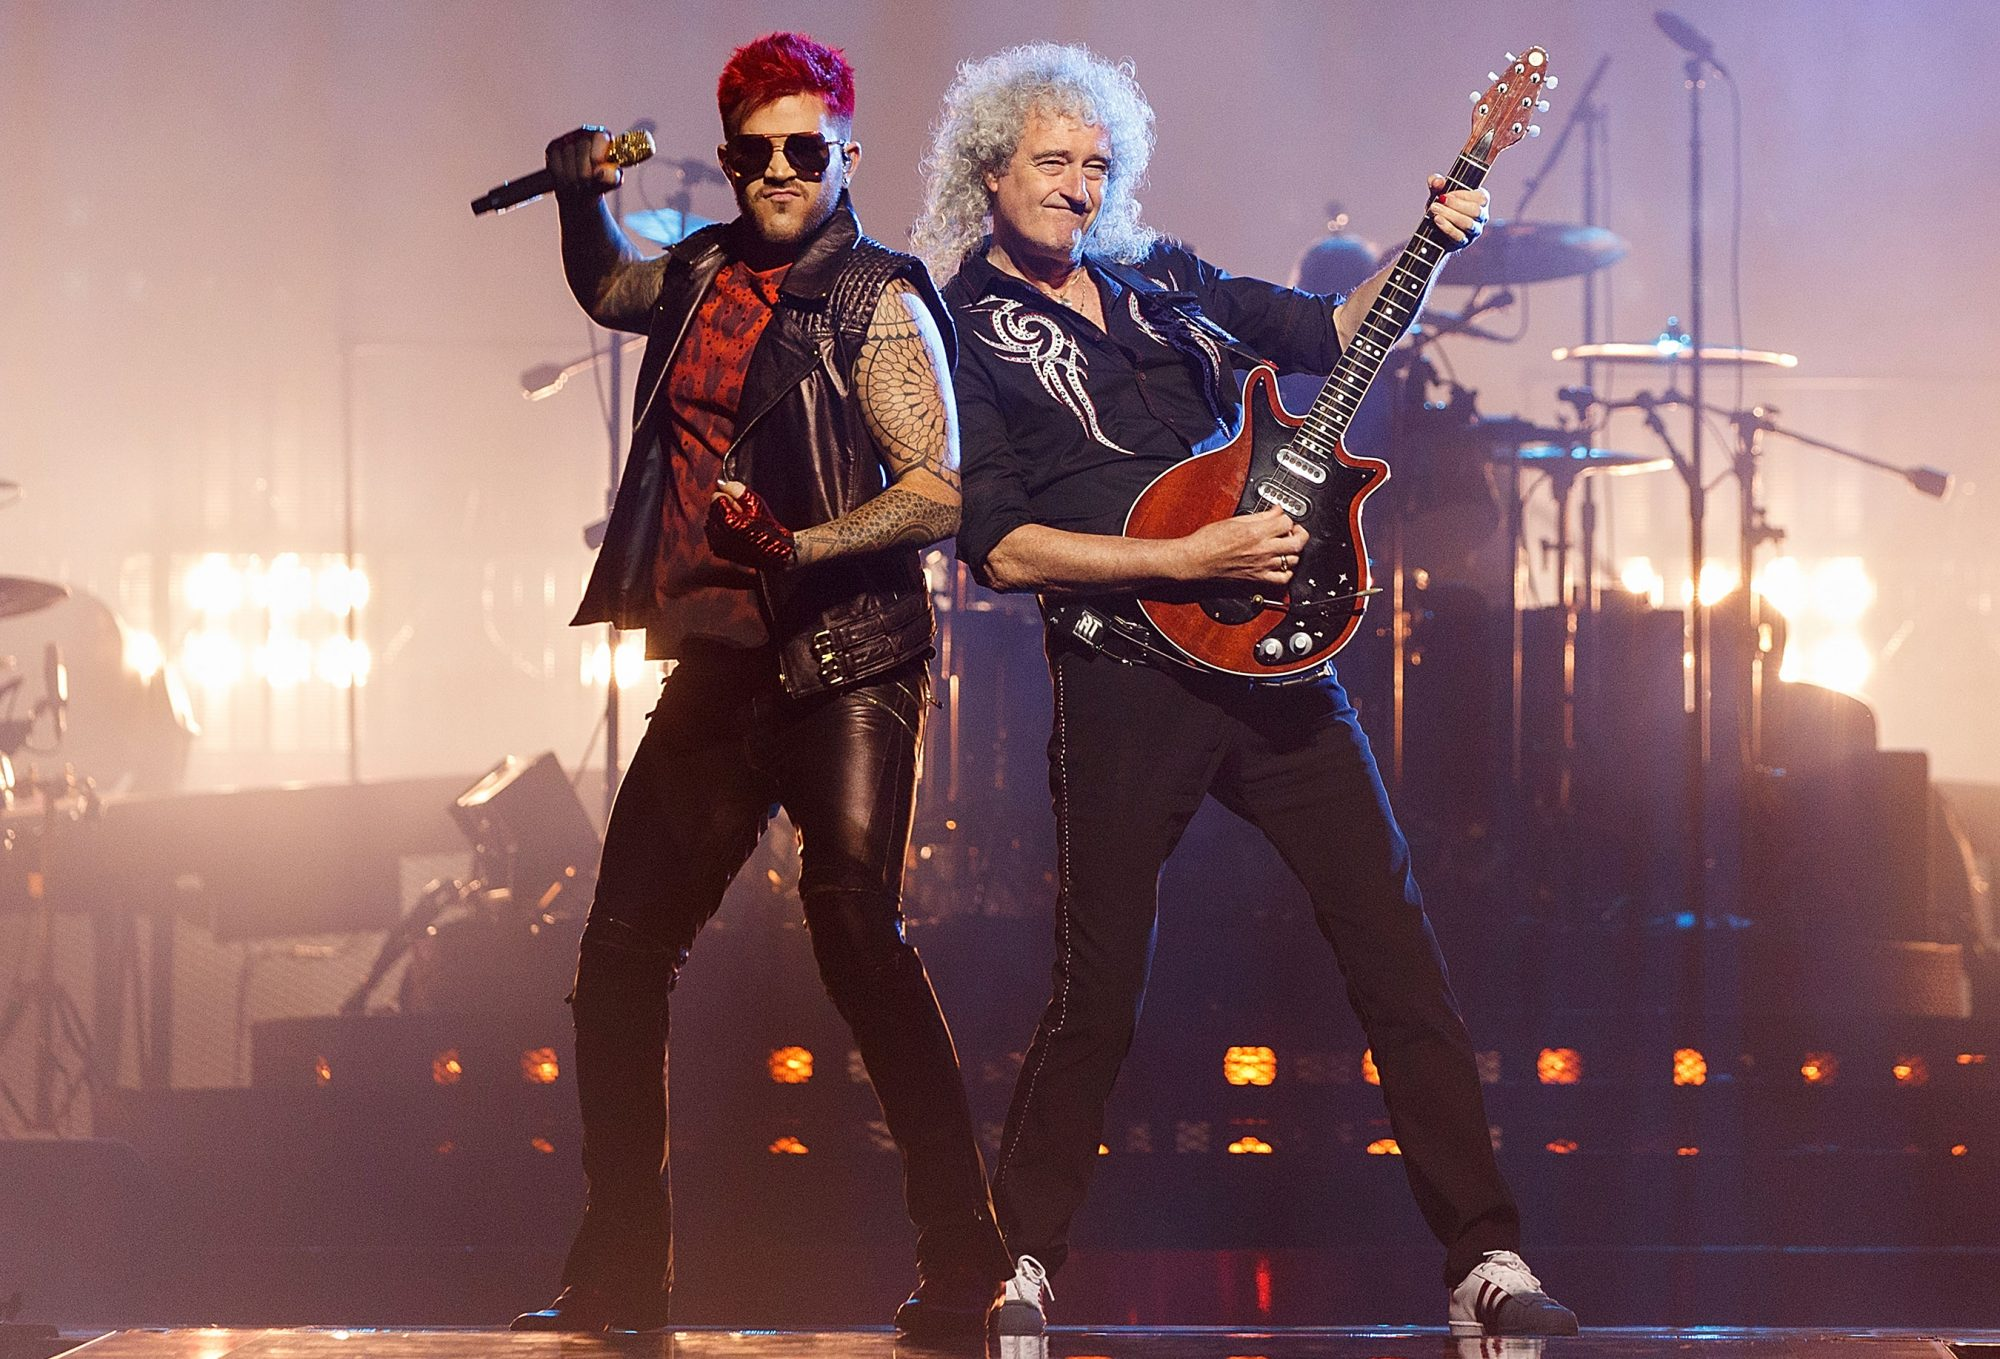 Queen + Adam Lambert Perform At Pepsi Live At Rogers Arena